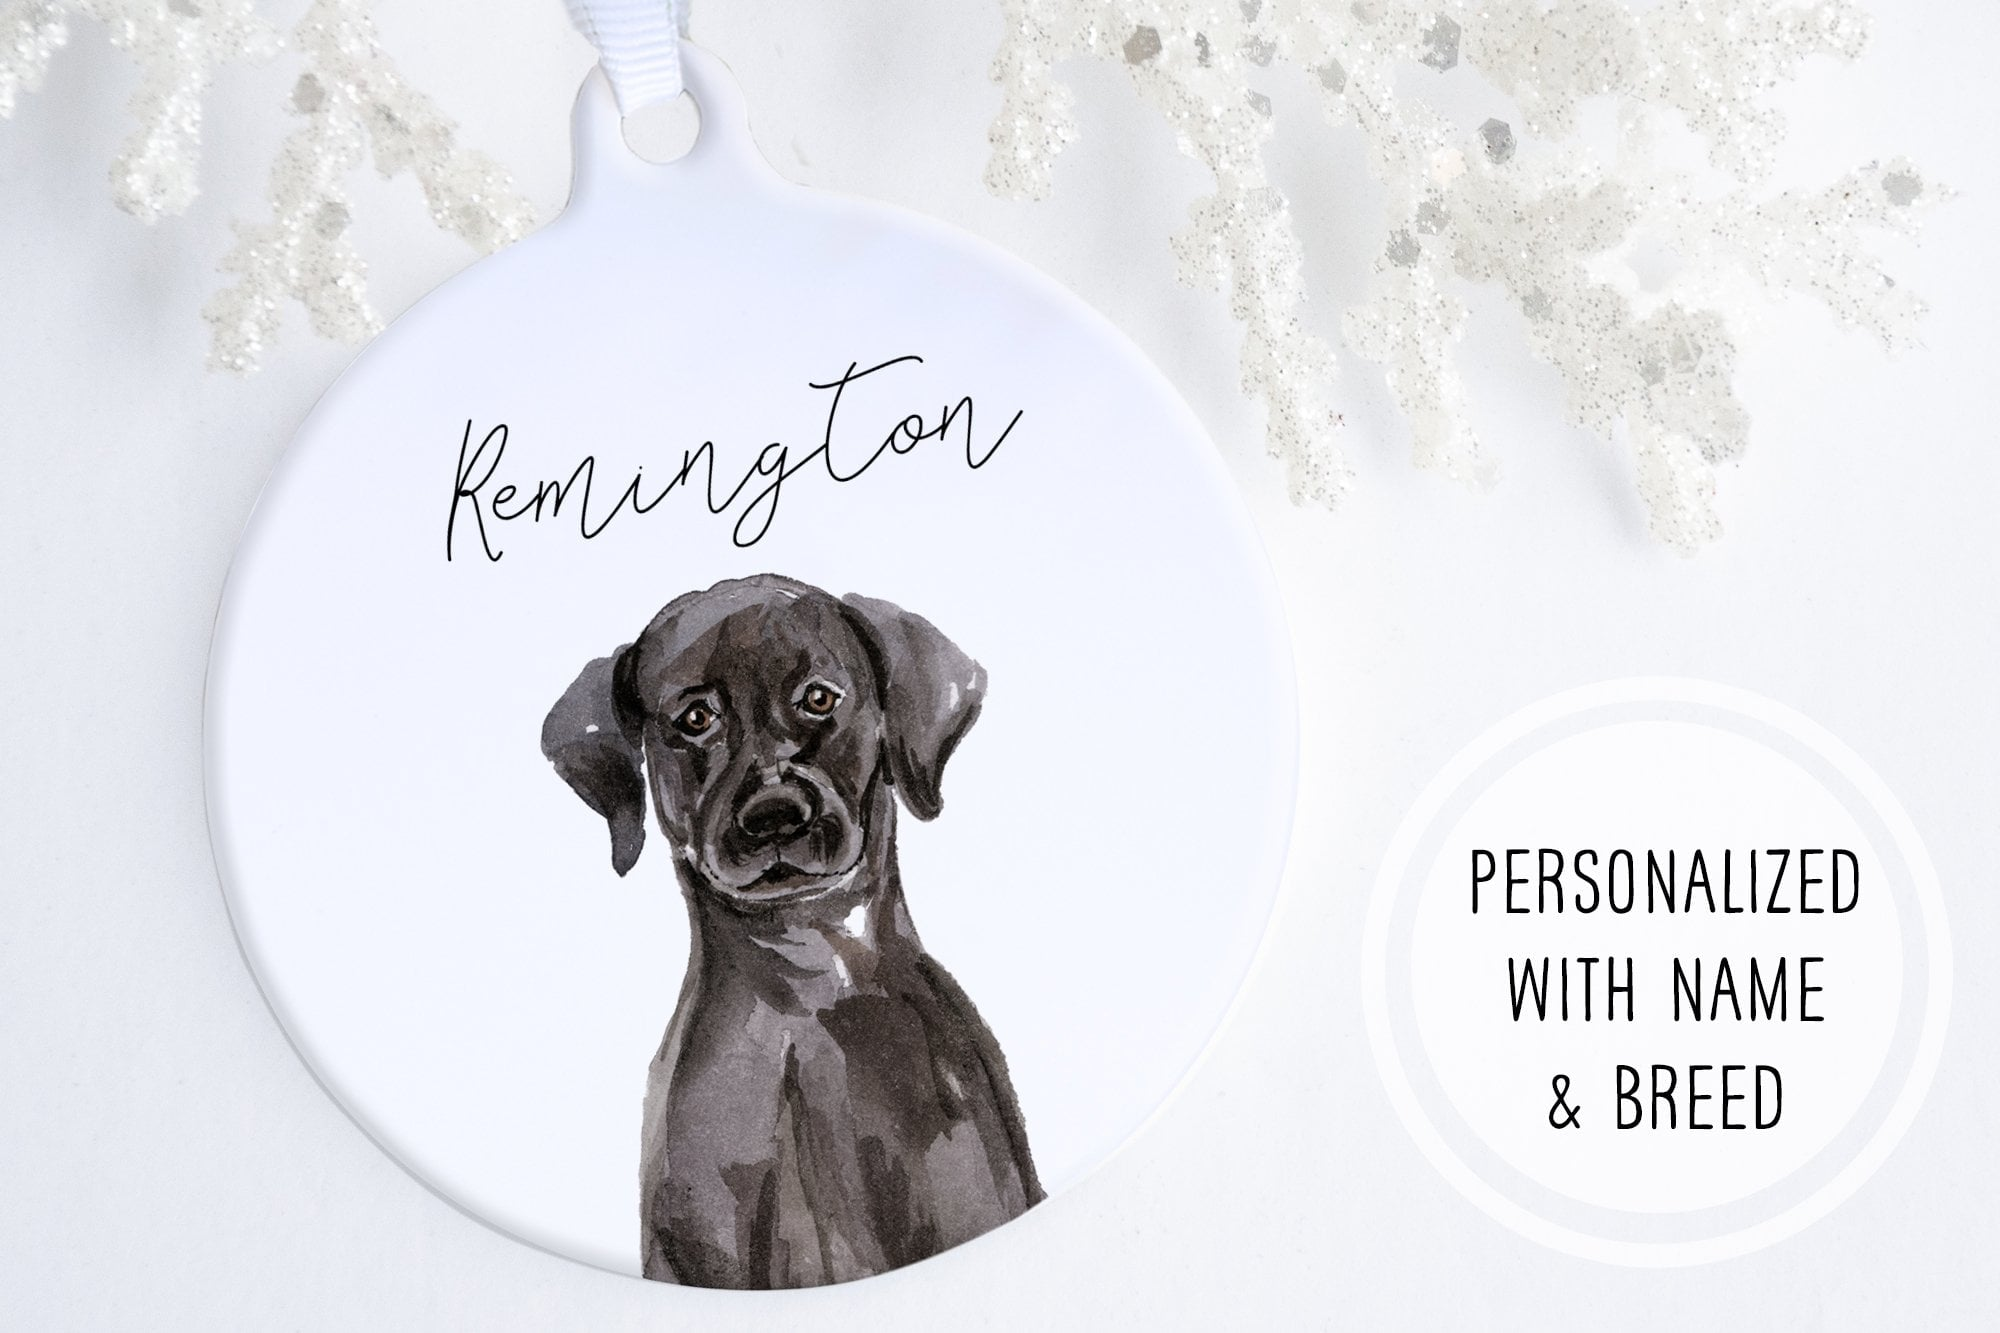 Personalized Dog Ornament | Ollie + Hank